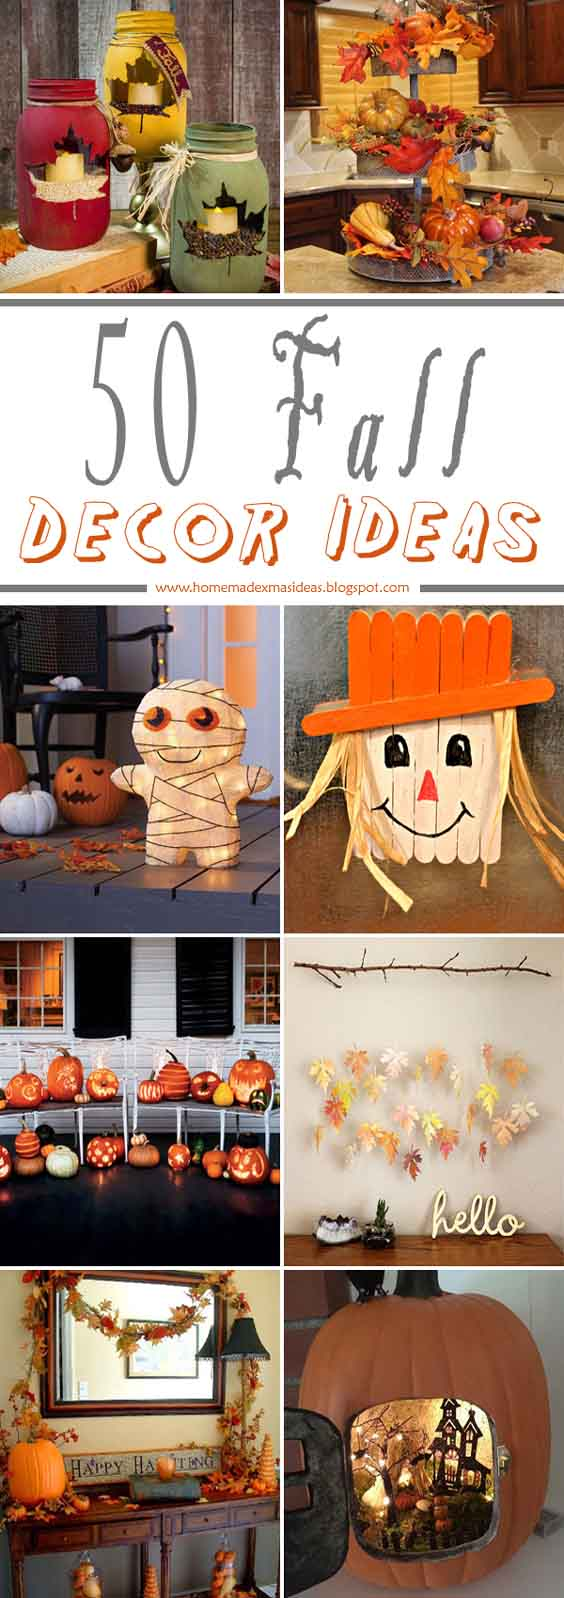 Simple and Cheap Fall Decor Ideas ( 50 Images of Fall Decorations )